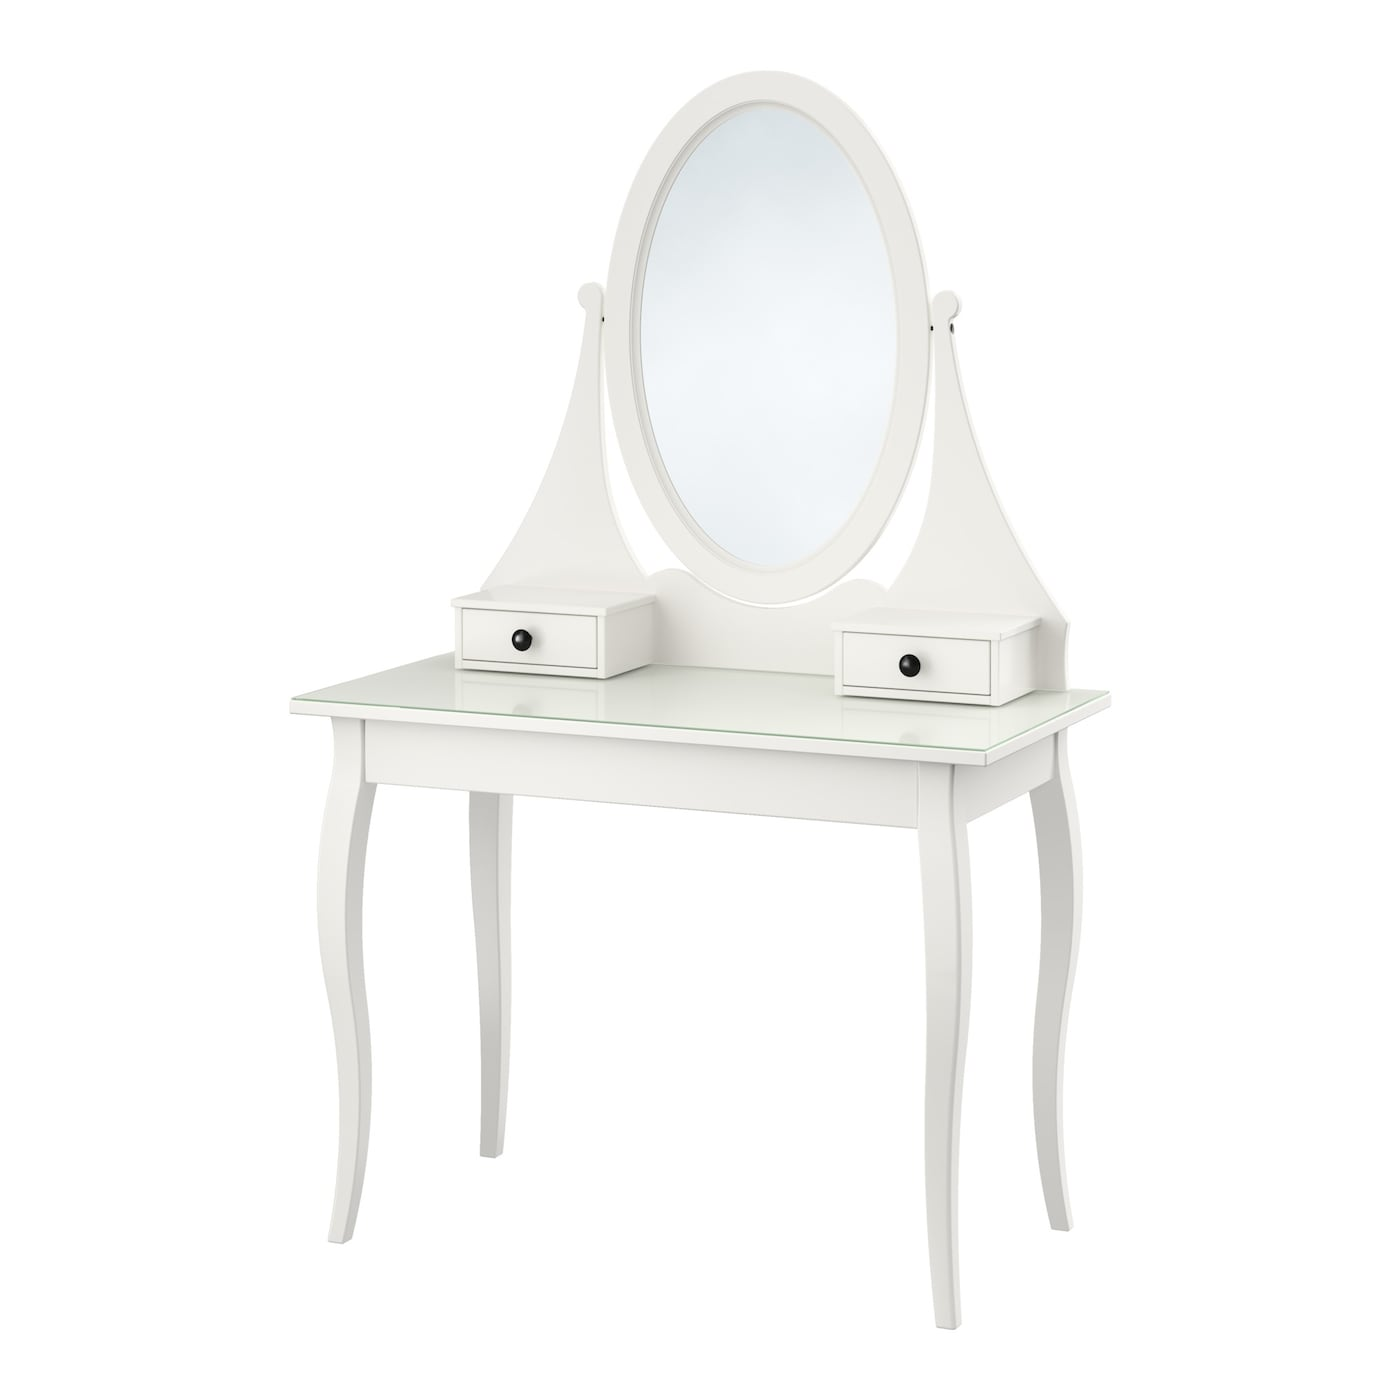 Hemnes dressing table with mirror white 100 x 50 cm ikea for Table de toilette acrylique ikea